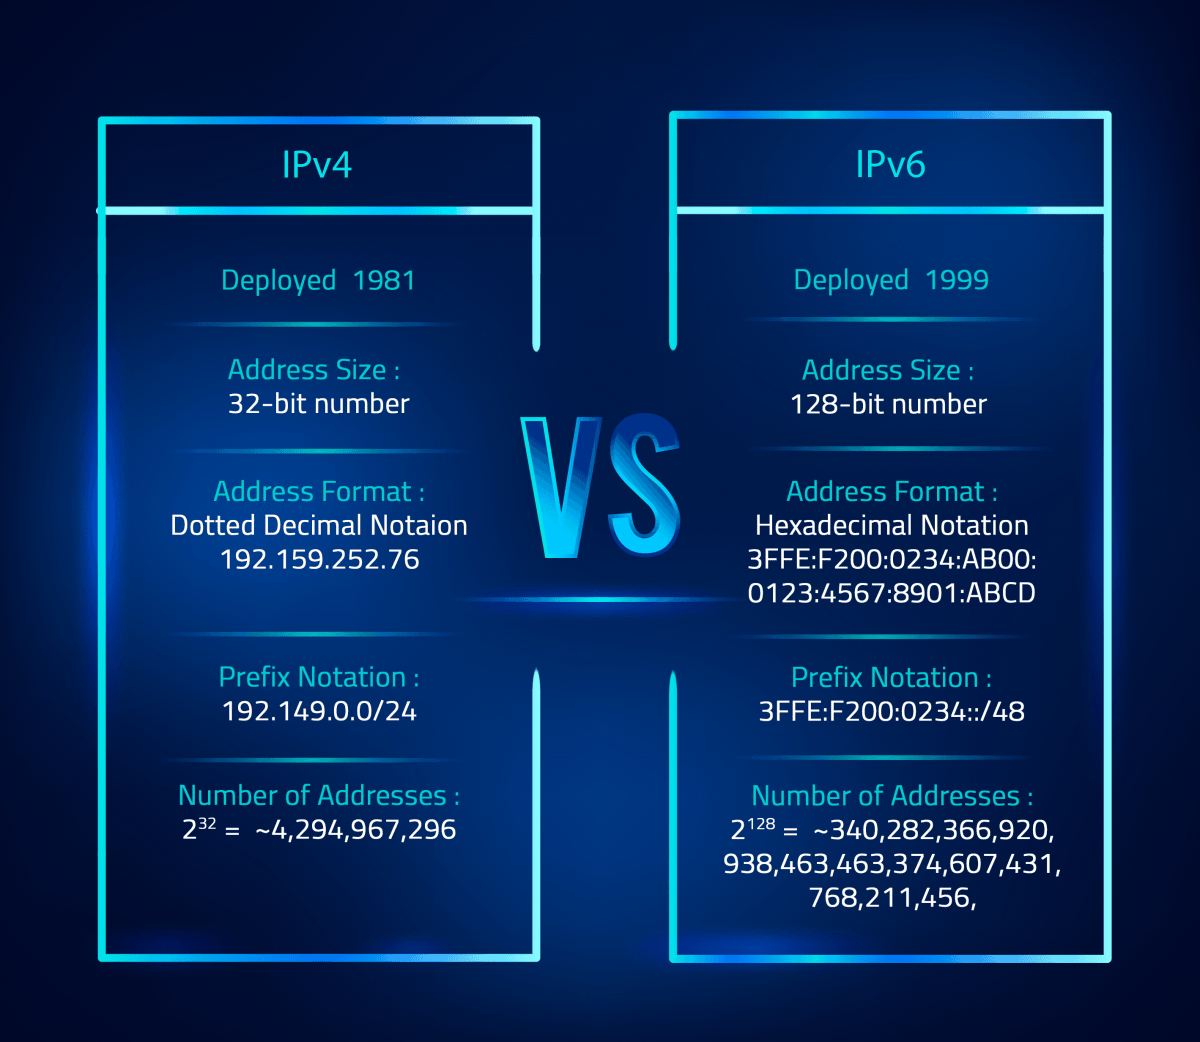 comparing difference between ipv4 and ipv6